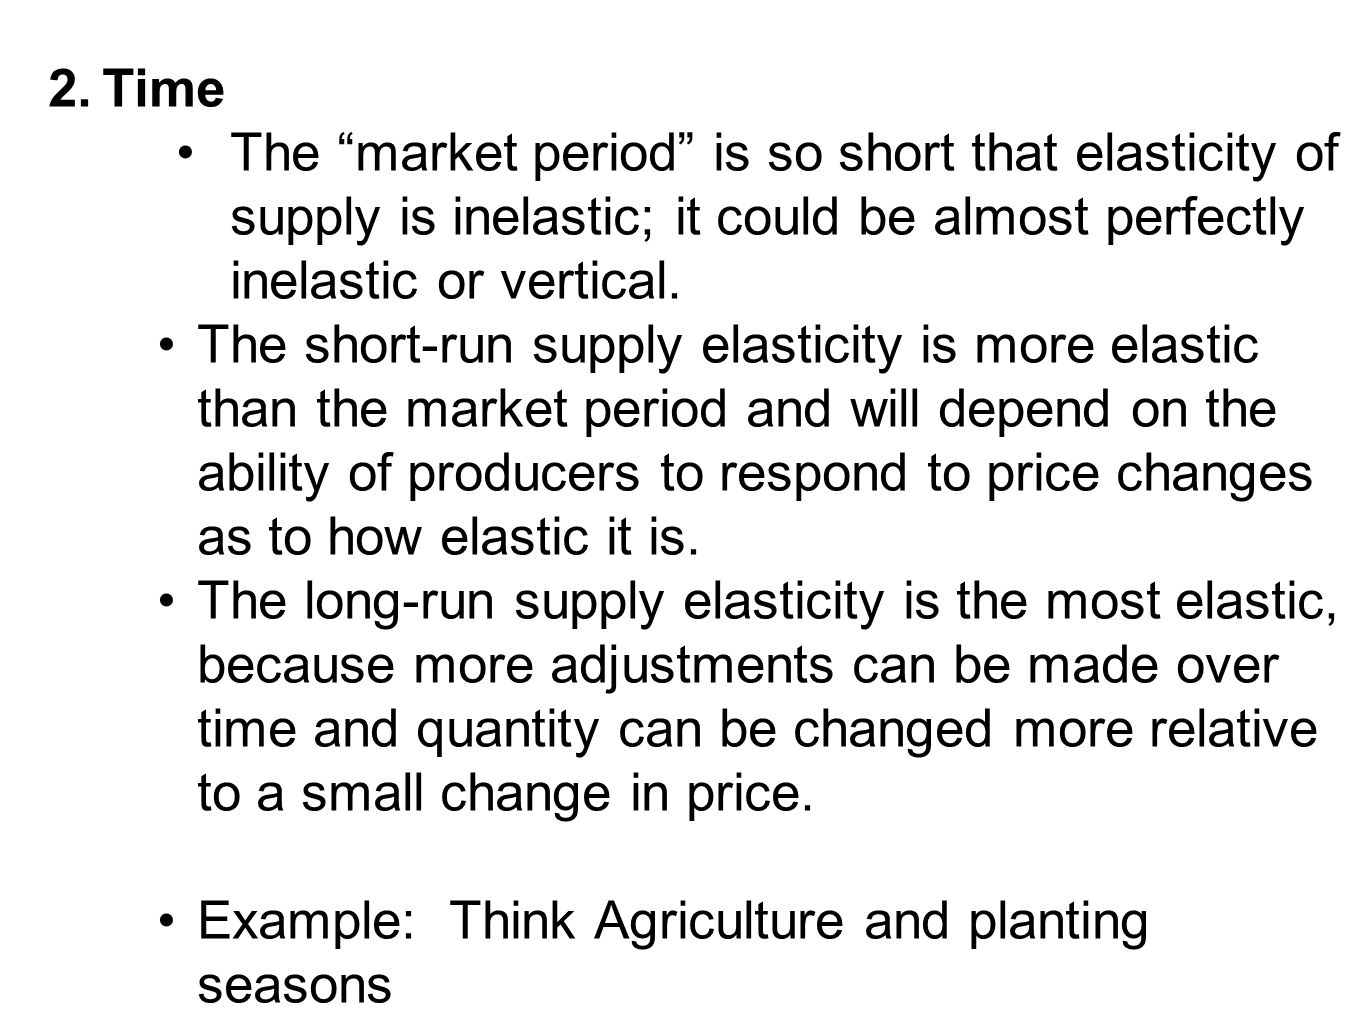 Example: Think Agriculture and planting seasons